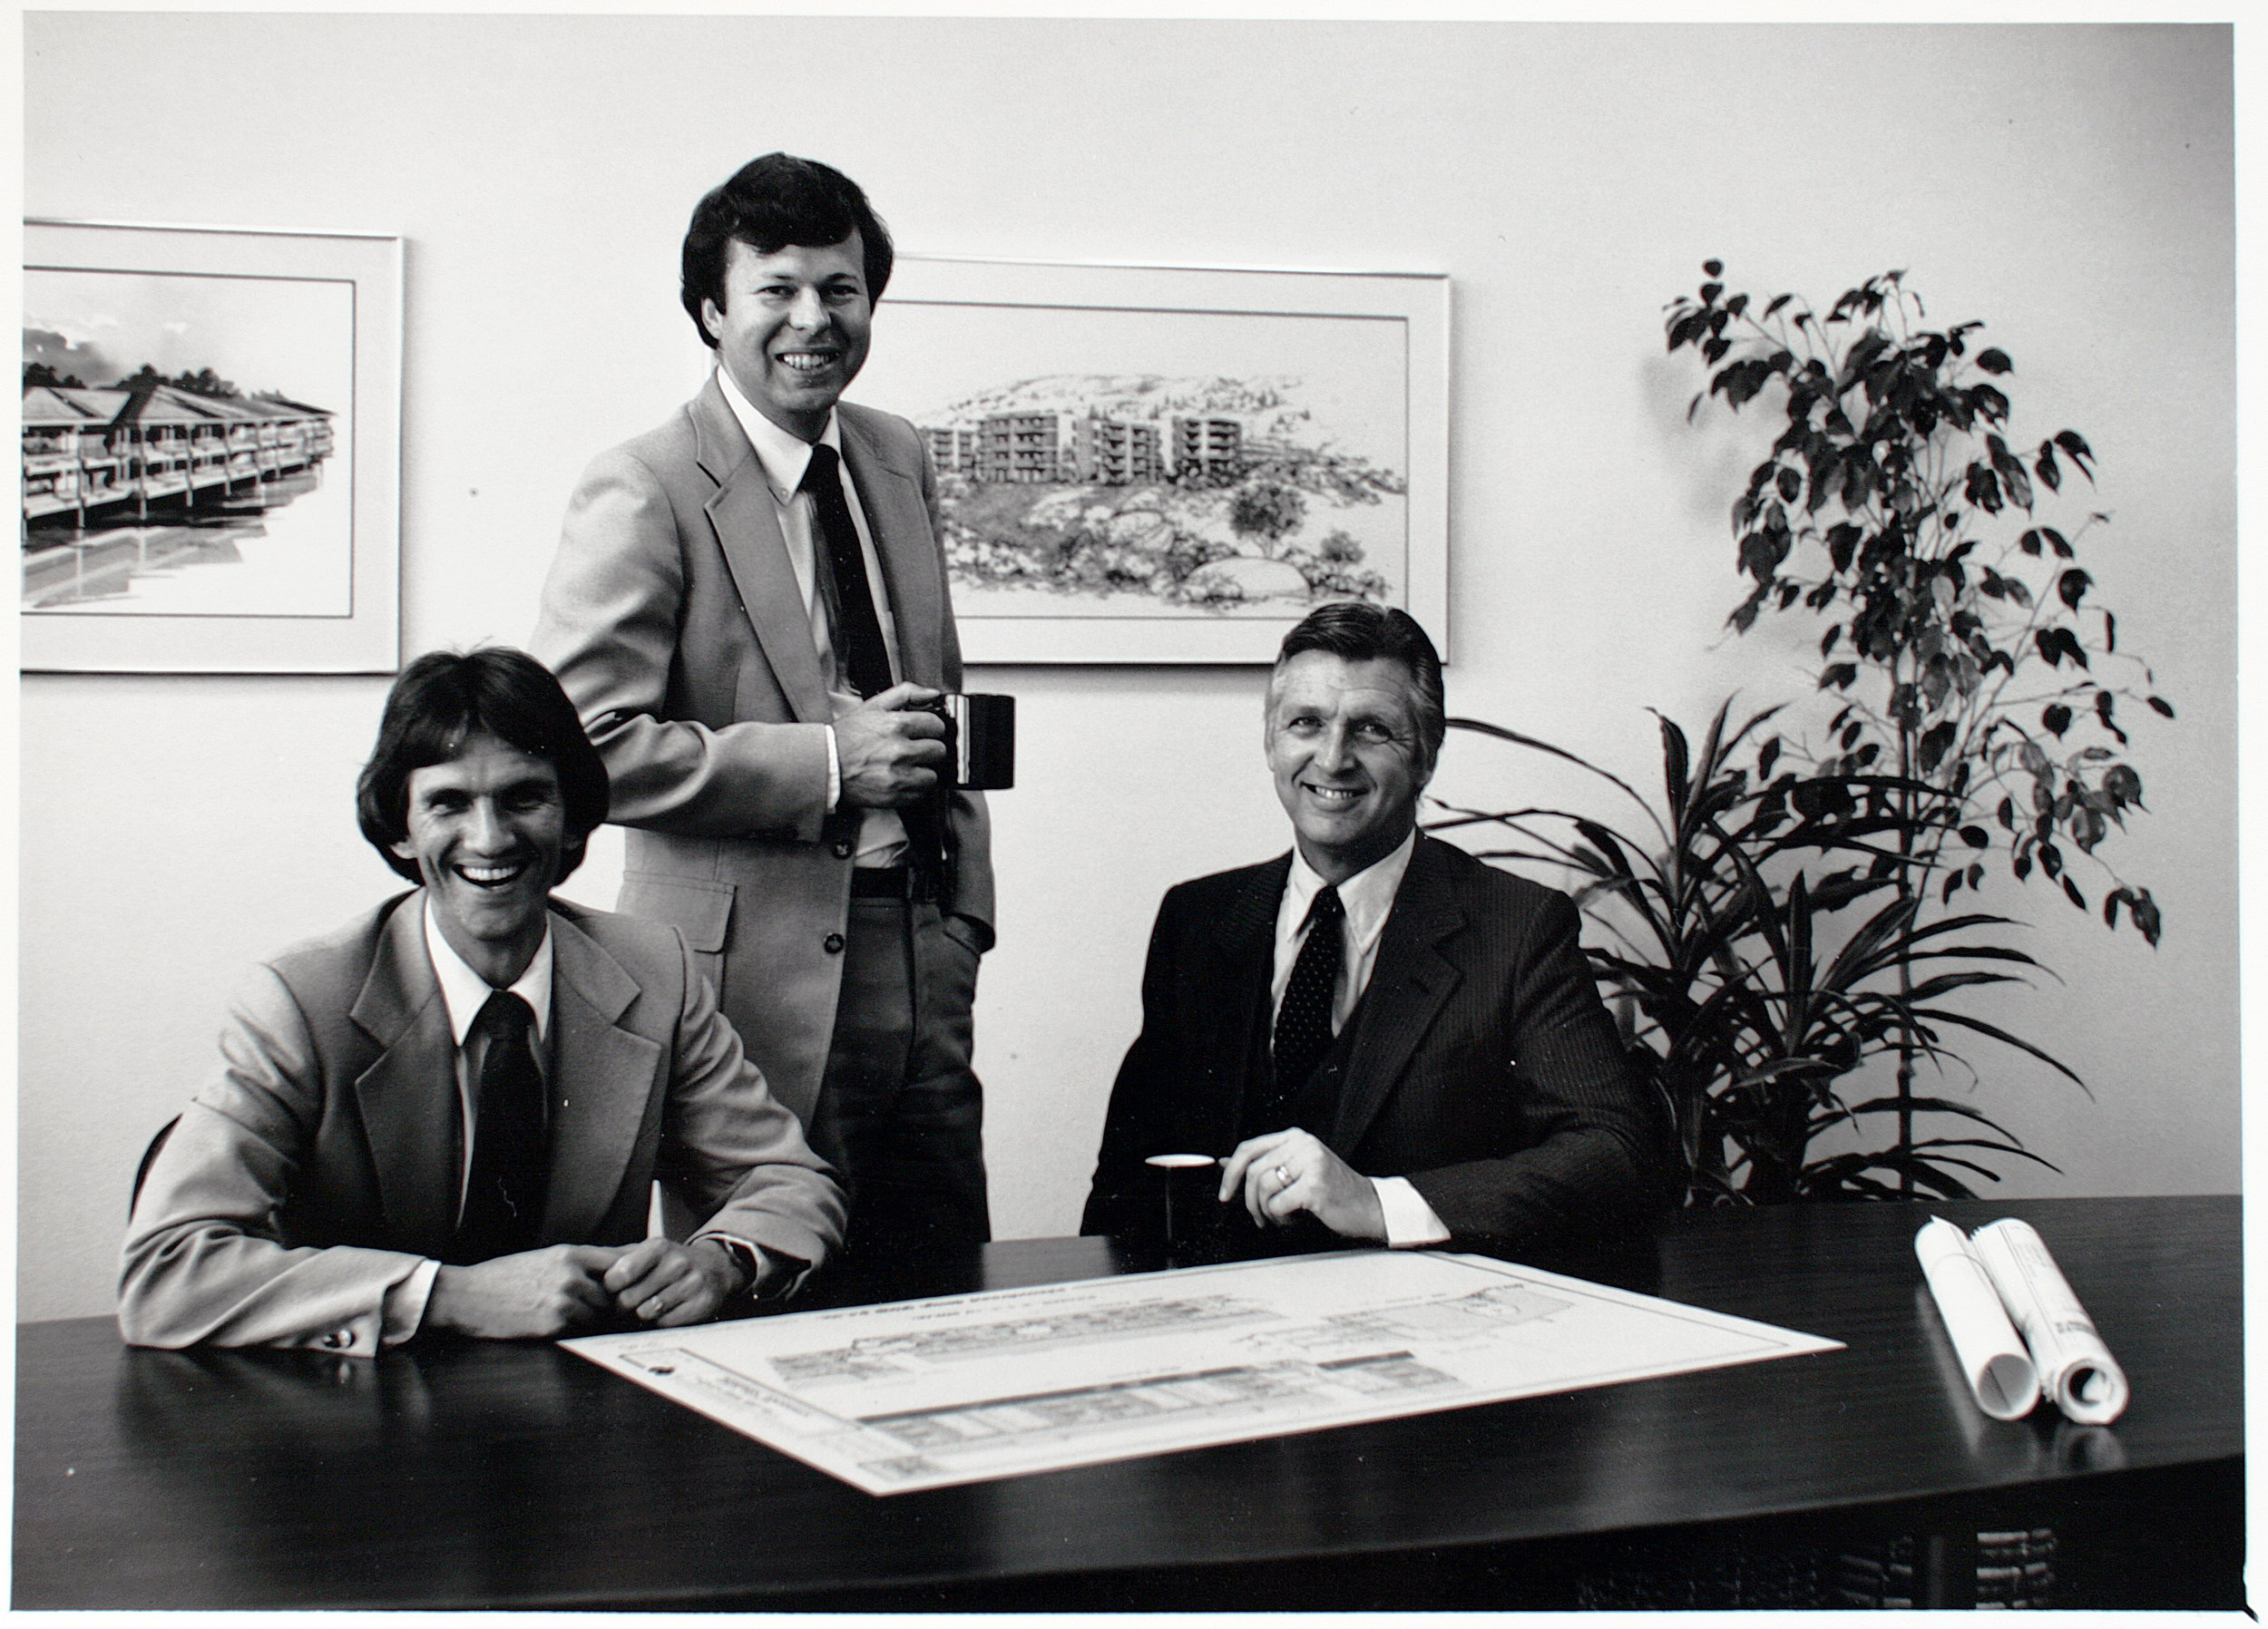 The Company's Founders, circa 1977. From left to right: Greg Allwine, Larry Braund, & Tom Johnson